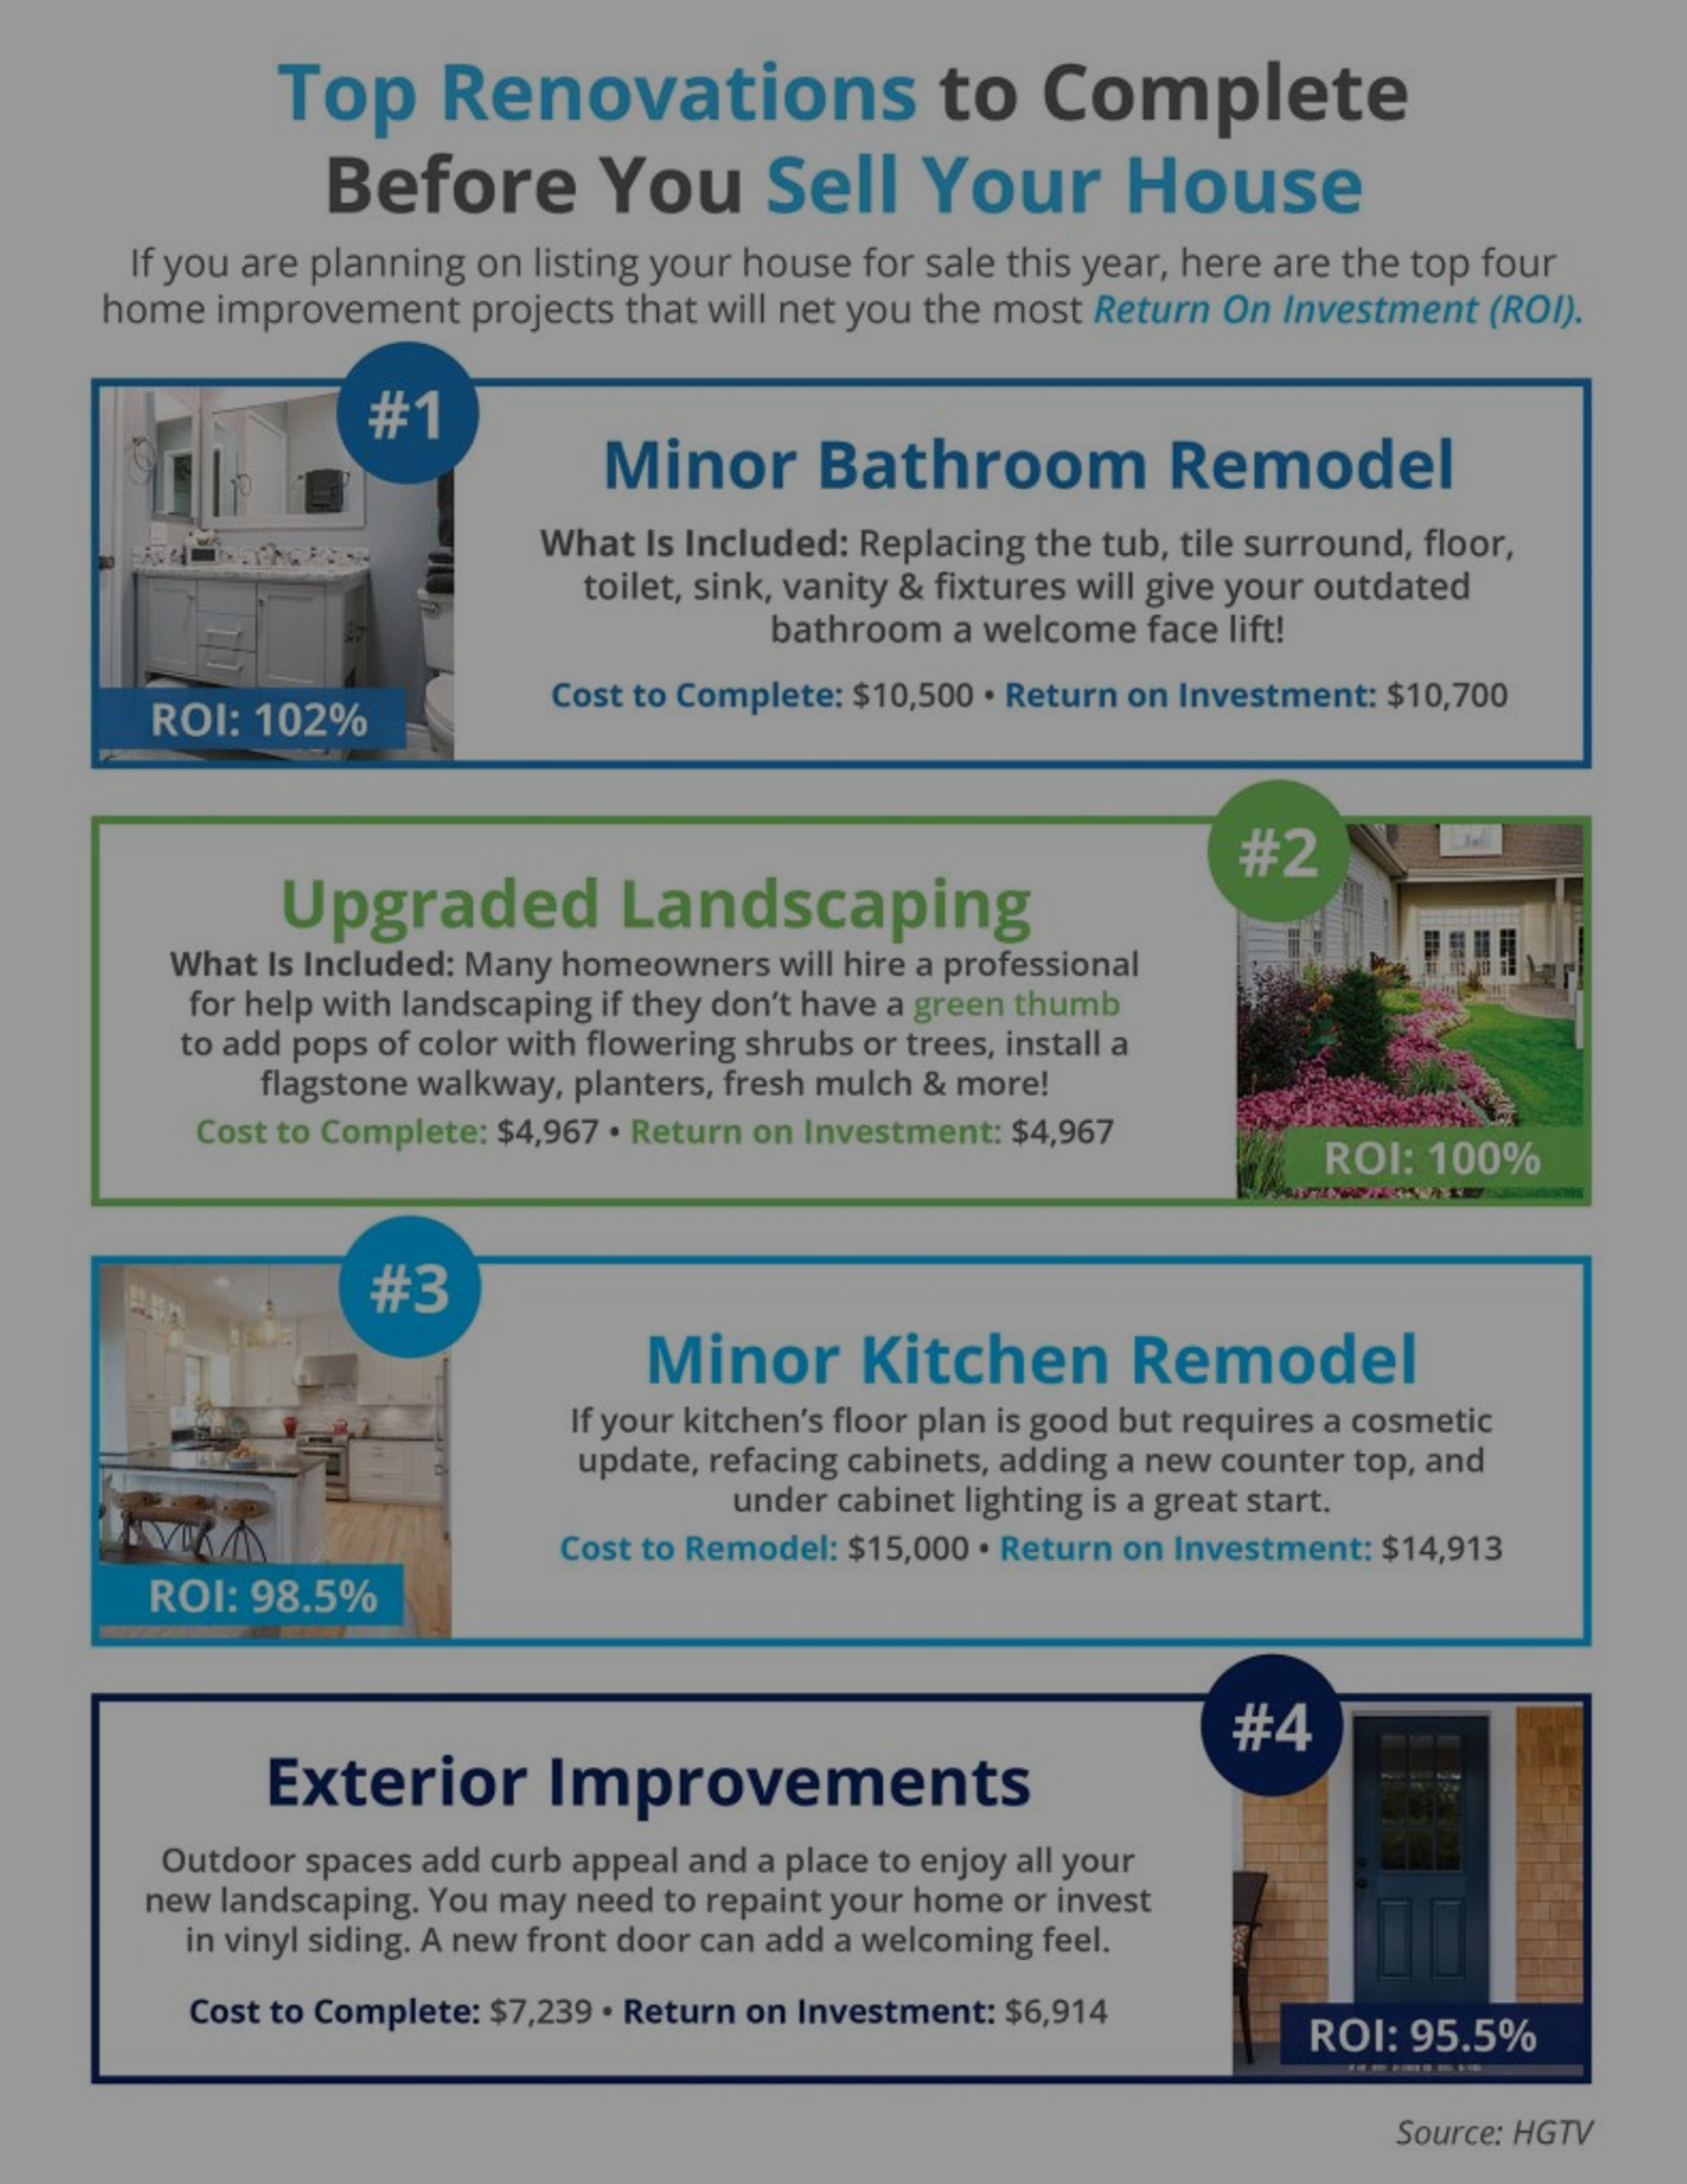 Top Renovations: Before You Sell Your Home